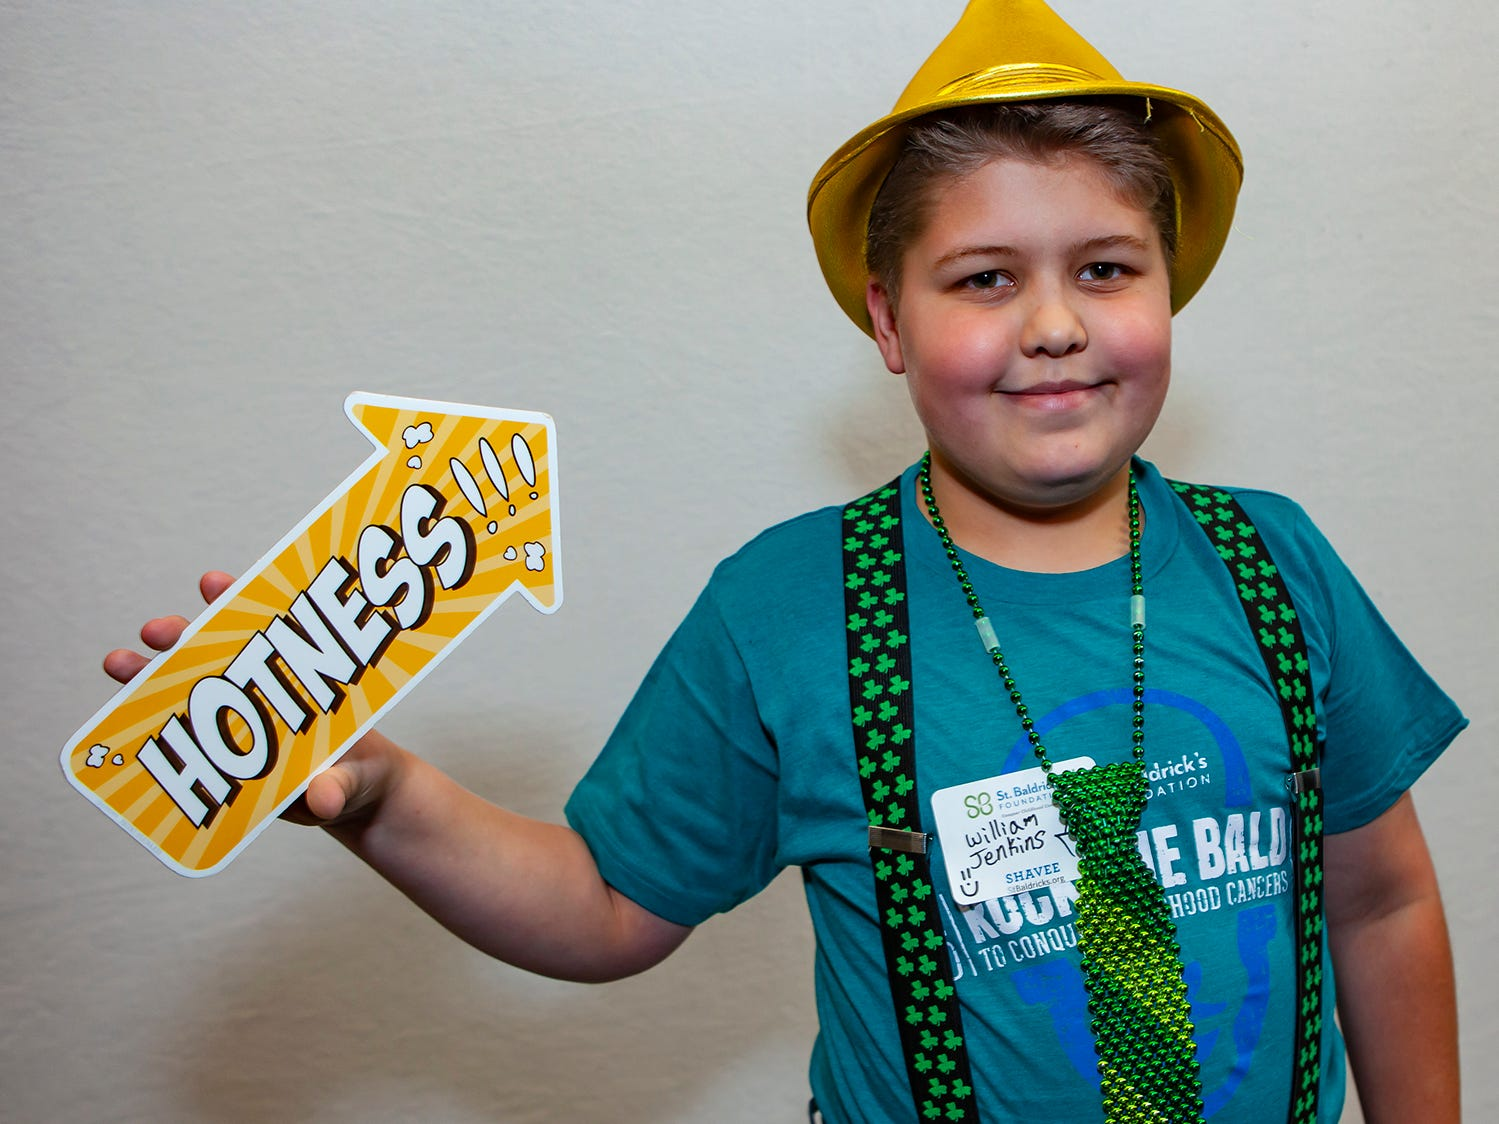 William Jenkins gets one last photo before volunteering to shave his head at the ninth annual Bald in the Boro fundraiser for the St. Baldrick's Foundation. The event was held Friday, March 15, 2019 at Lanes, Trains and Automobiles in Murfreesboro.